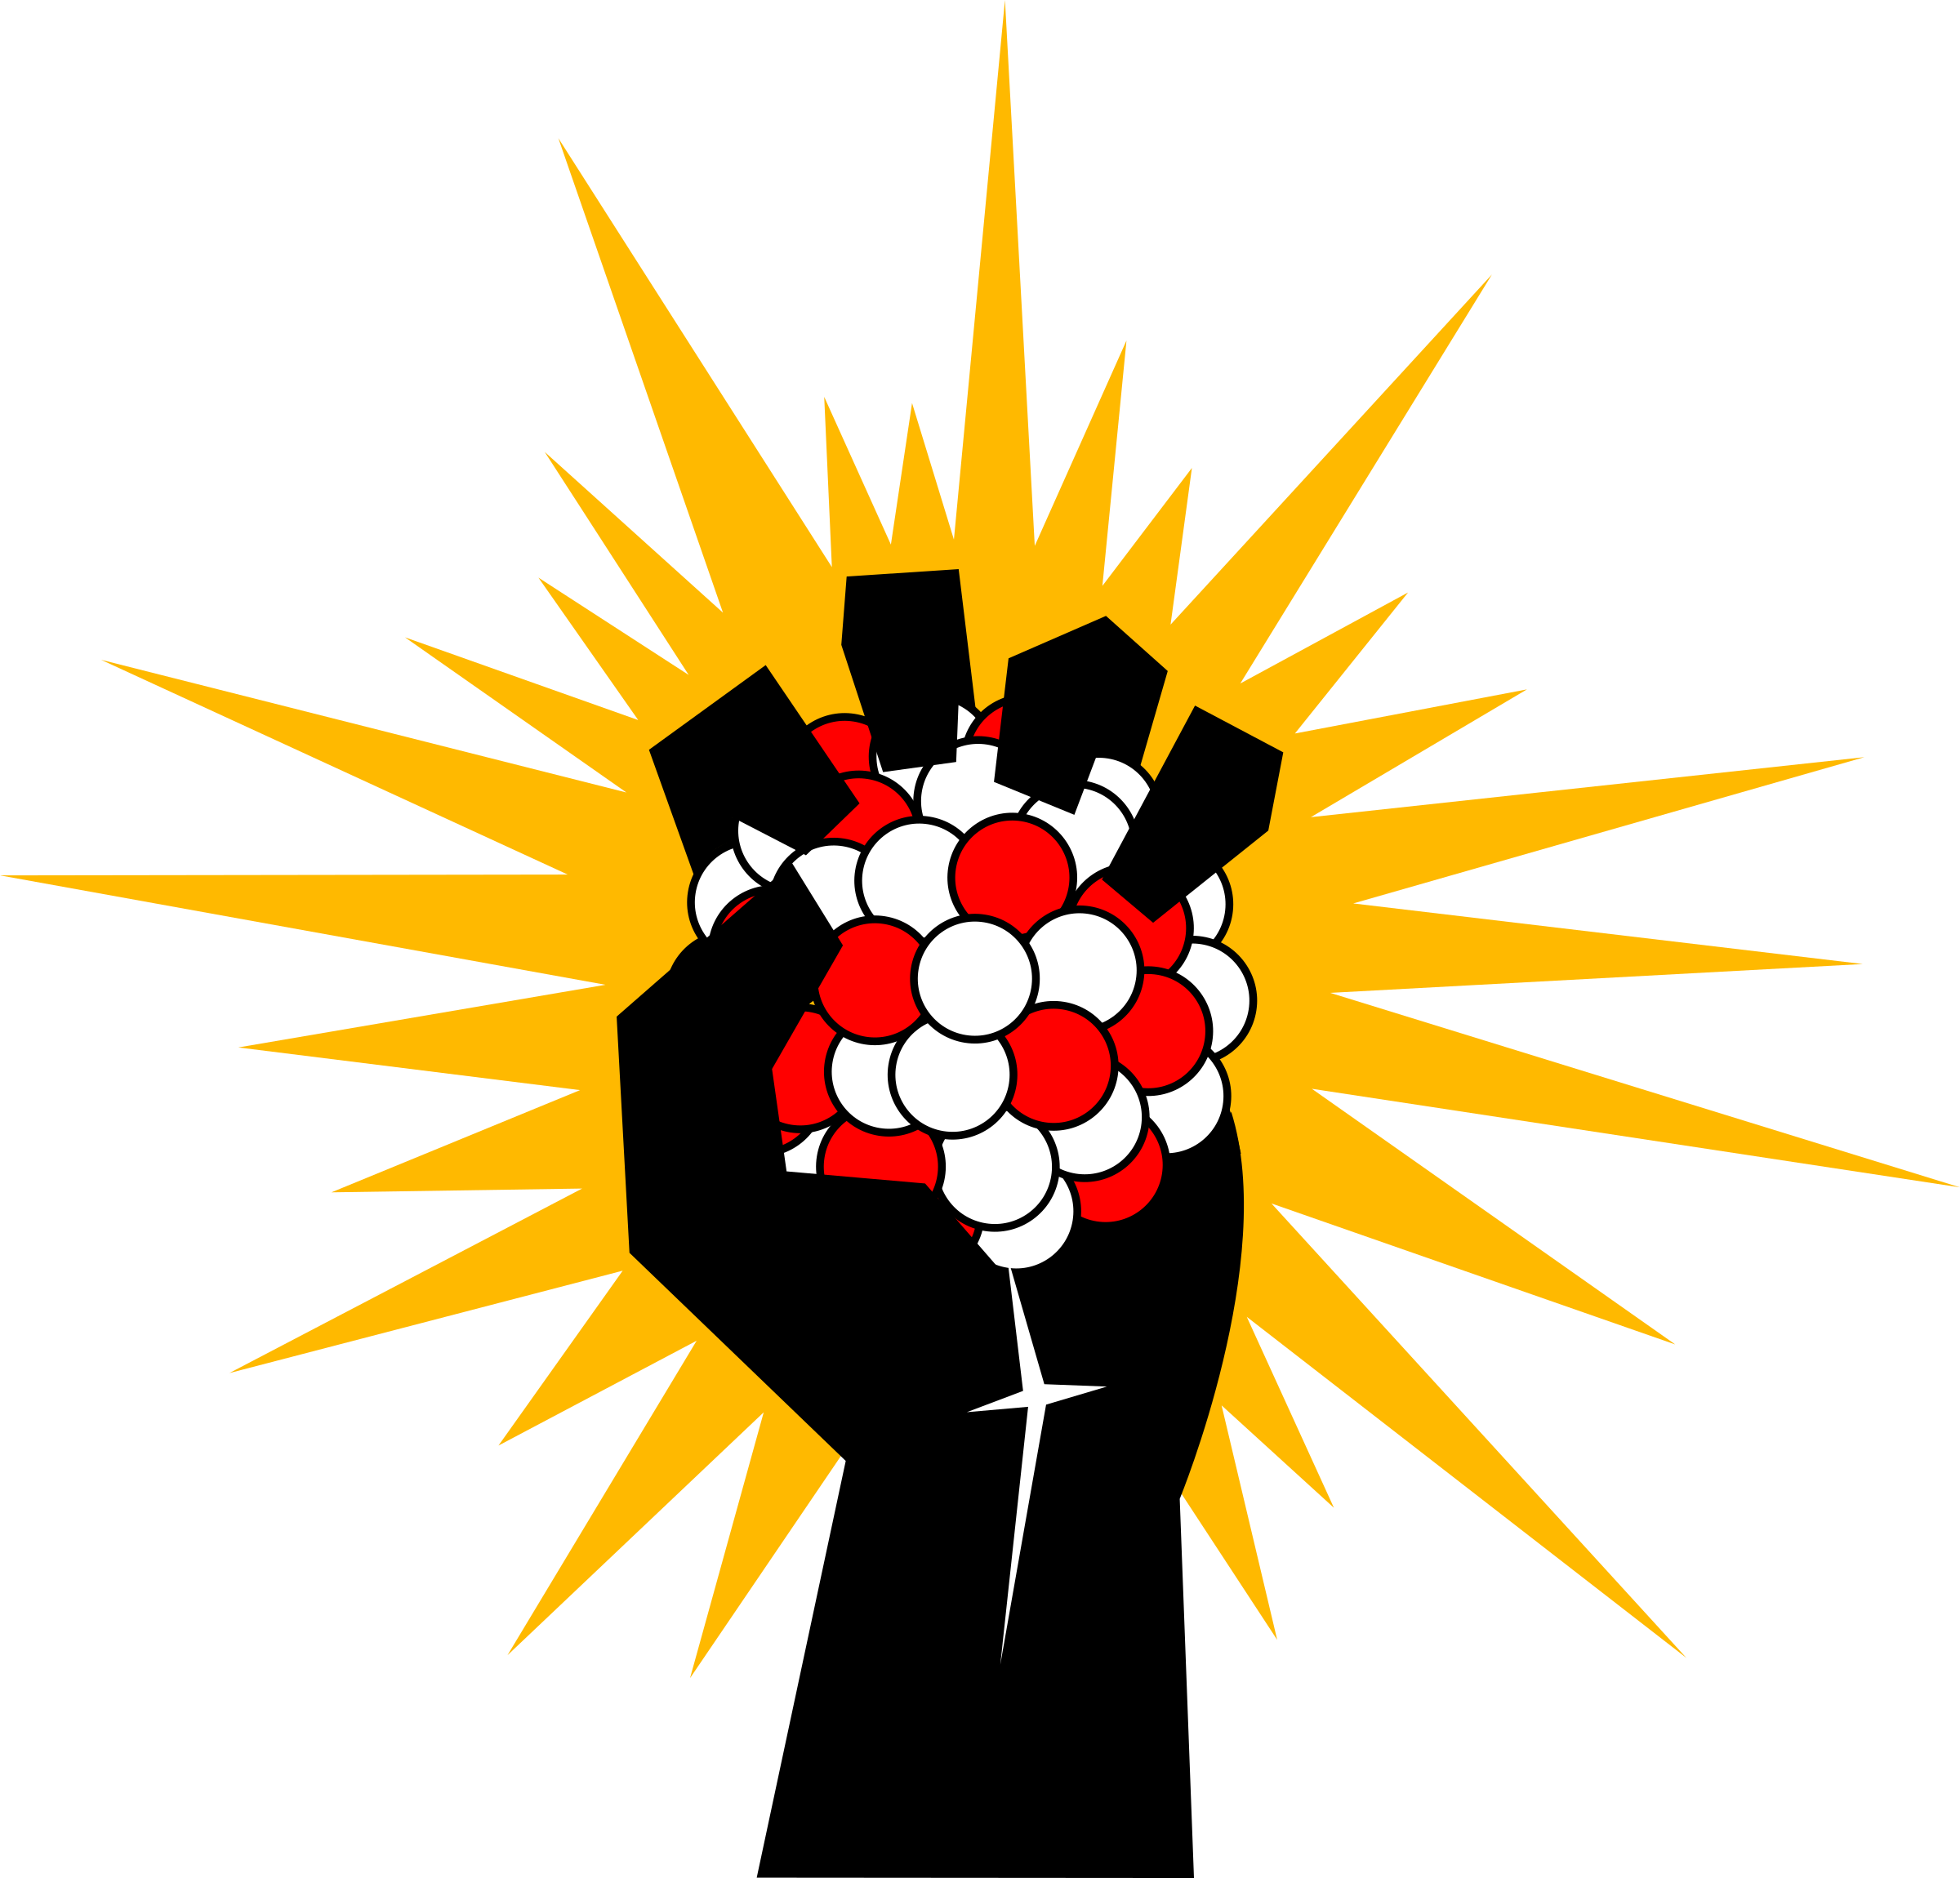 Energy clipart atomic energy. Fist big image png